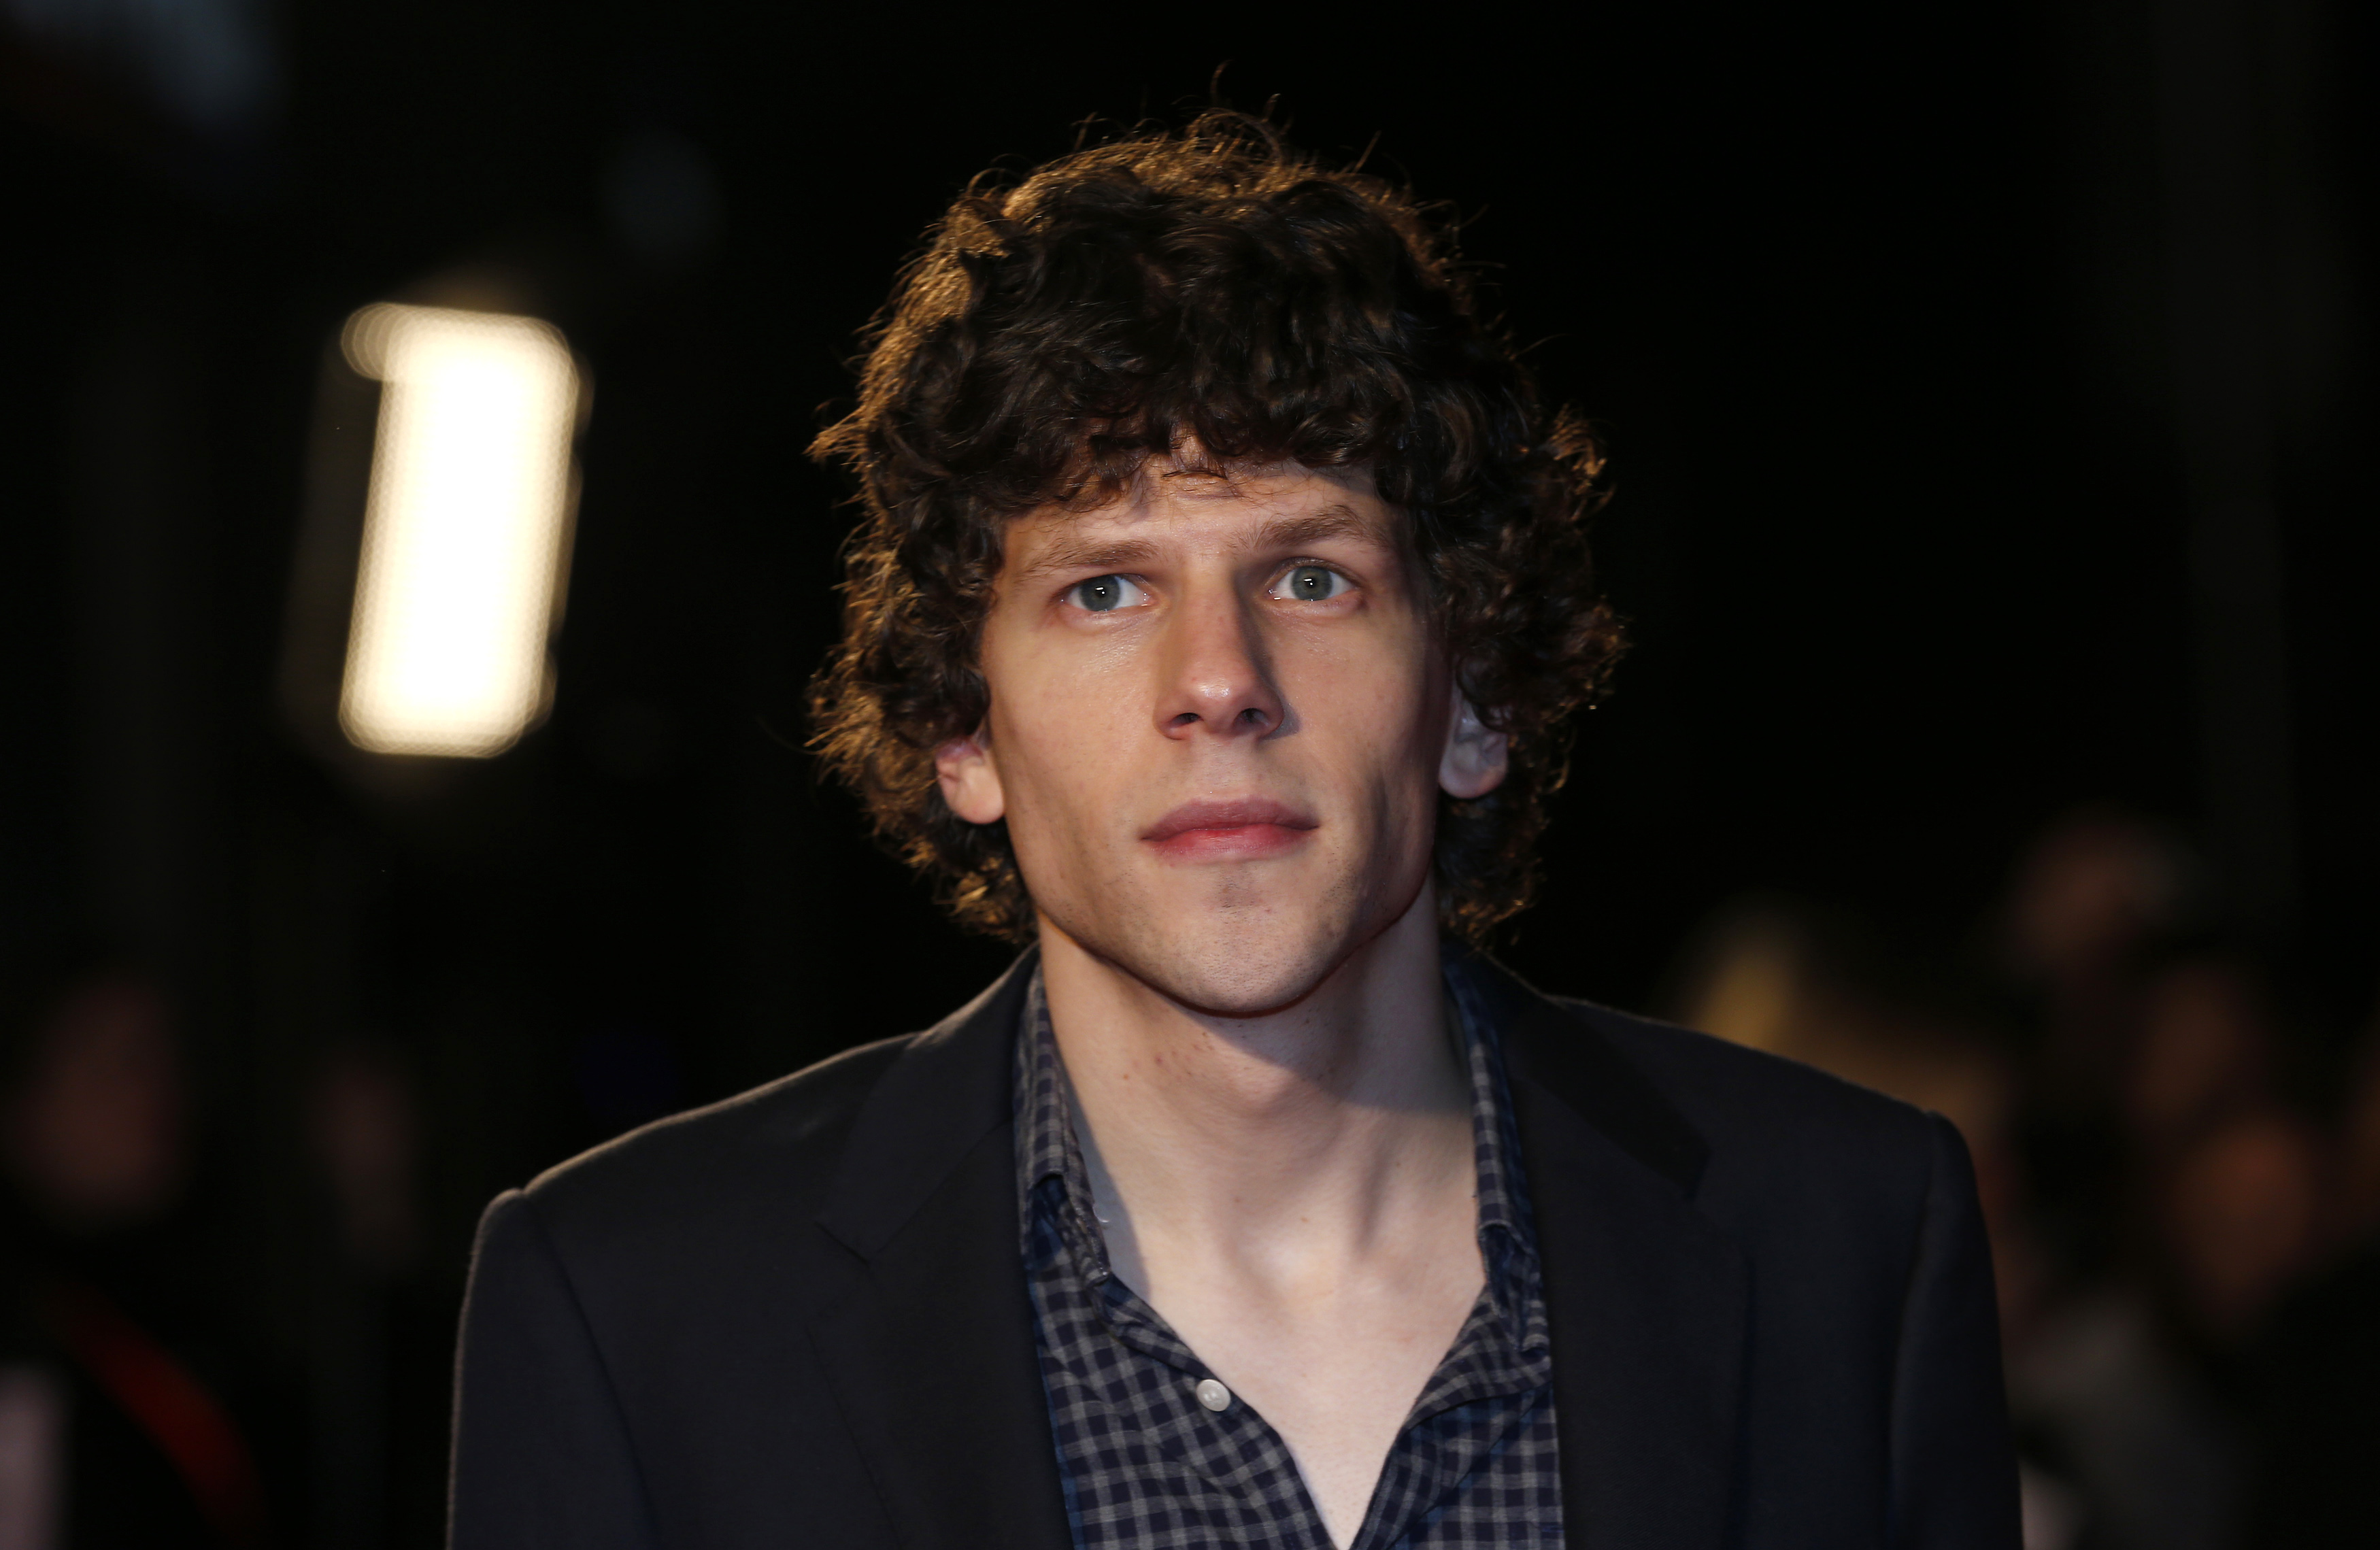 Cast member Jesse Eisenberg arrives for the European premiere of  The Double  at the London Film Festival, at the Odeon West End, in central London October 12, 2013.